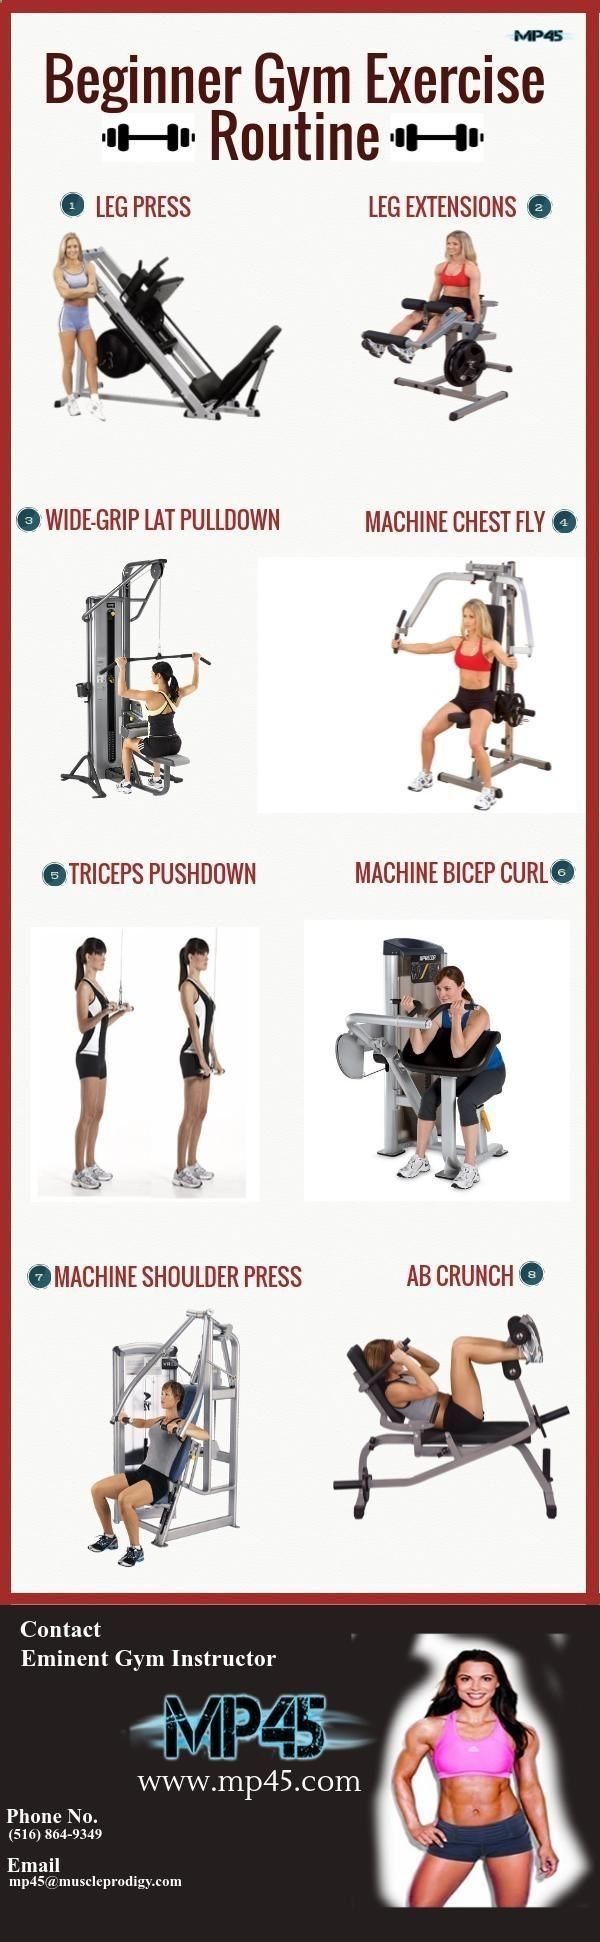 Gym Machine Workout Routine For Abs Yourviewsite Co